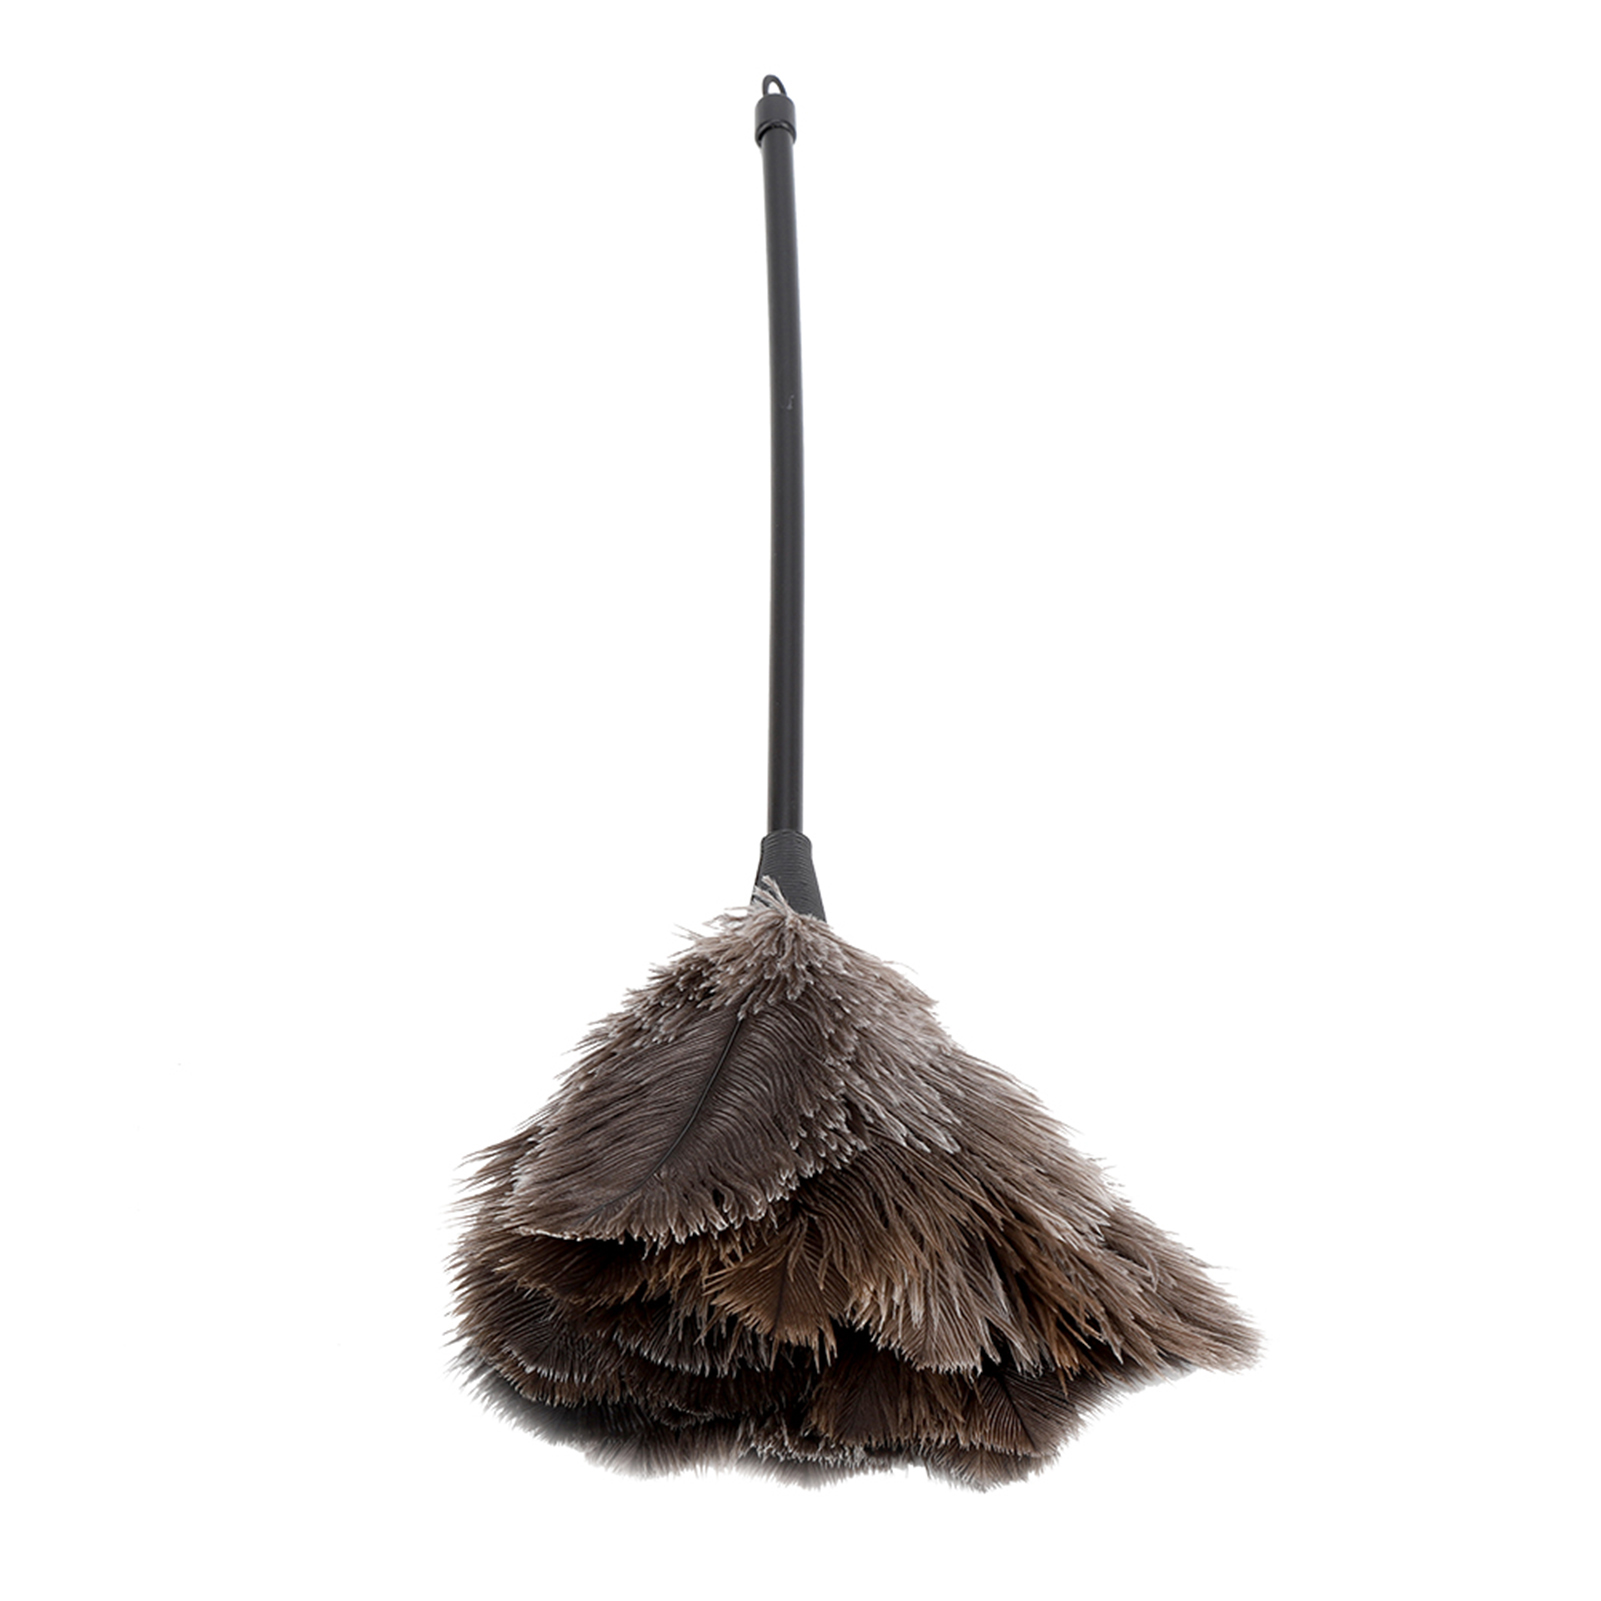 Anti-static-Wool-Ostrich-Feather-Fur-Brush-Duster-Dust-Cleaning-Tool-Wood-Handle thumbnail 26